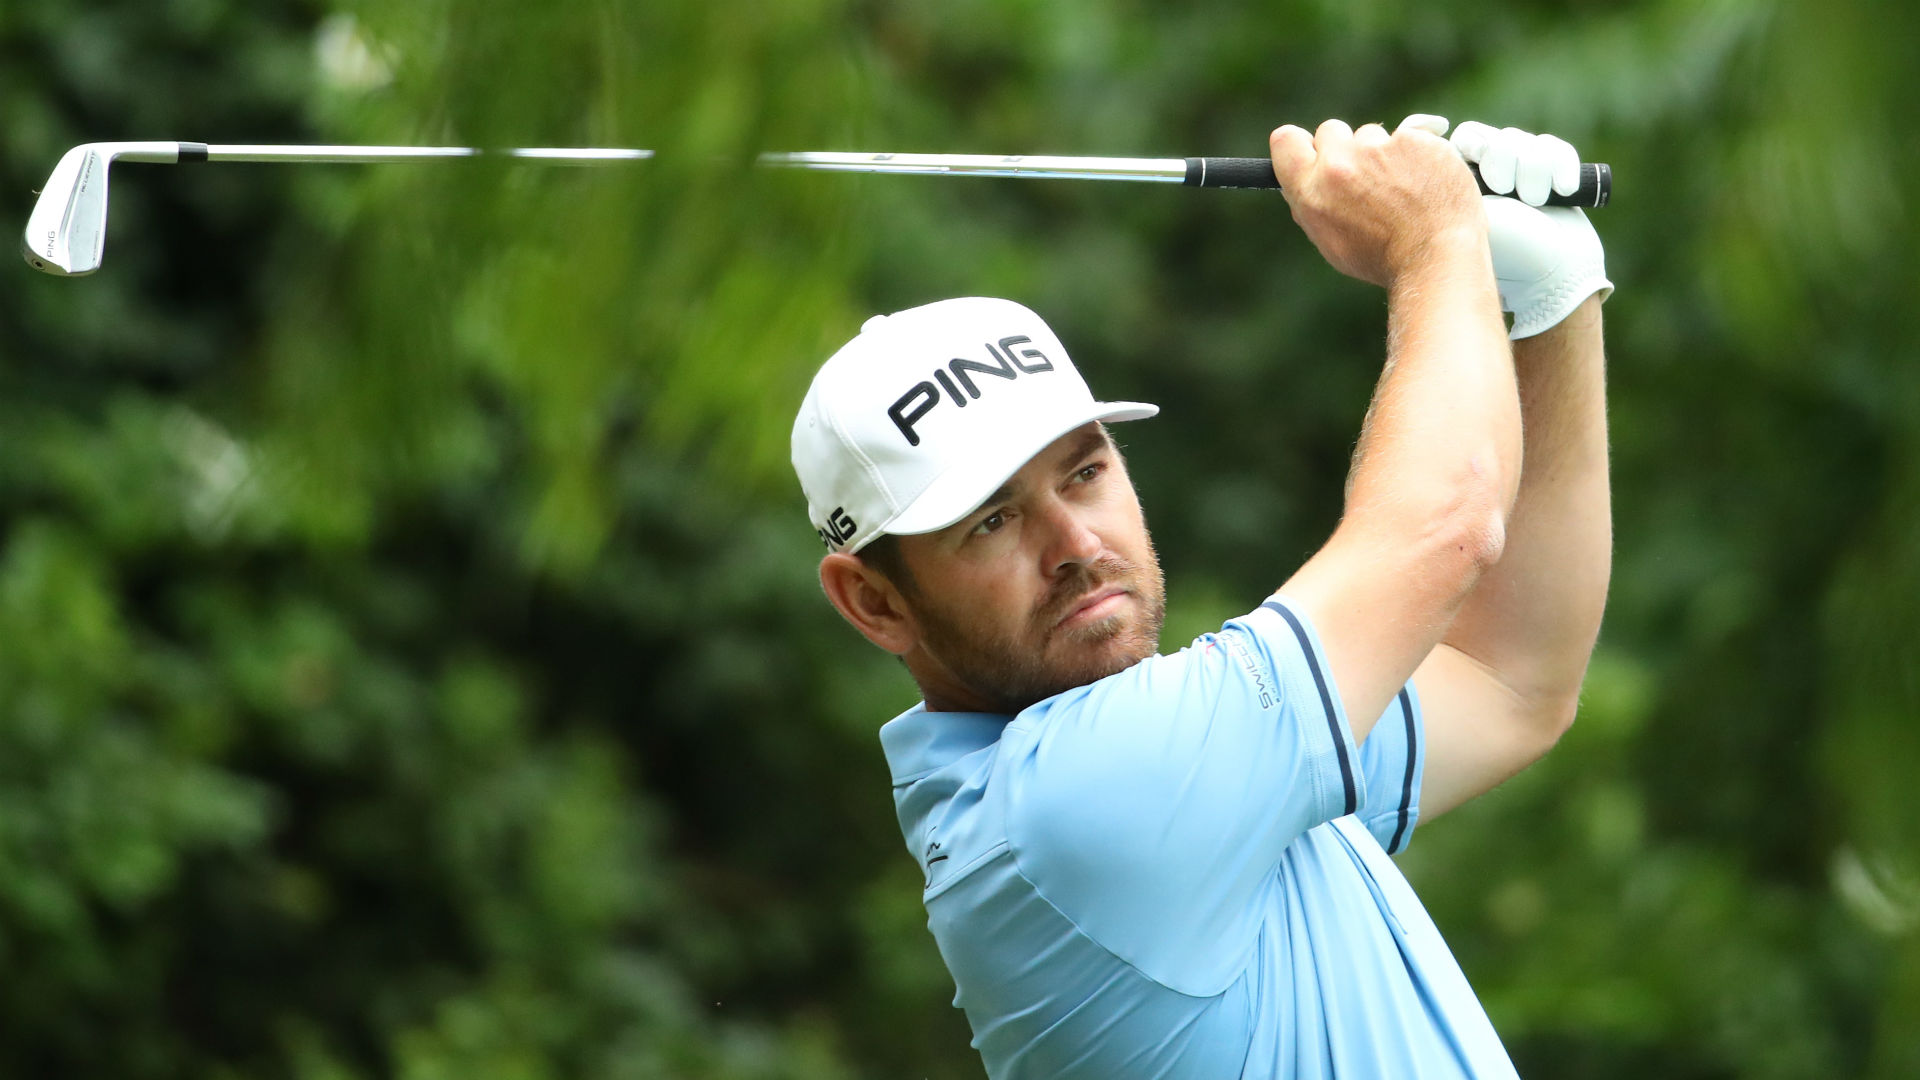 Reigning champion Oosthuizen scrambles for one-shot lead